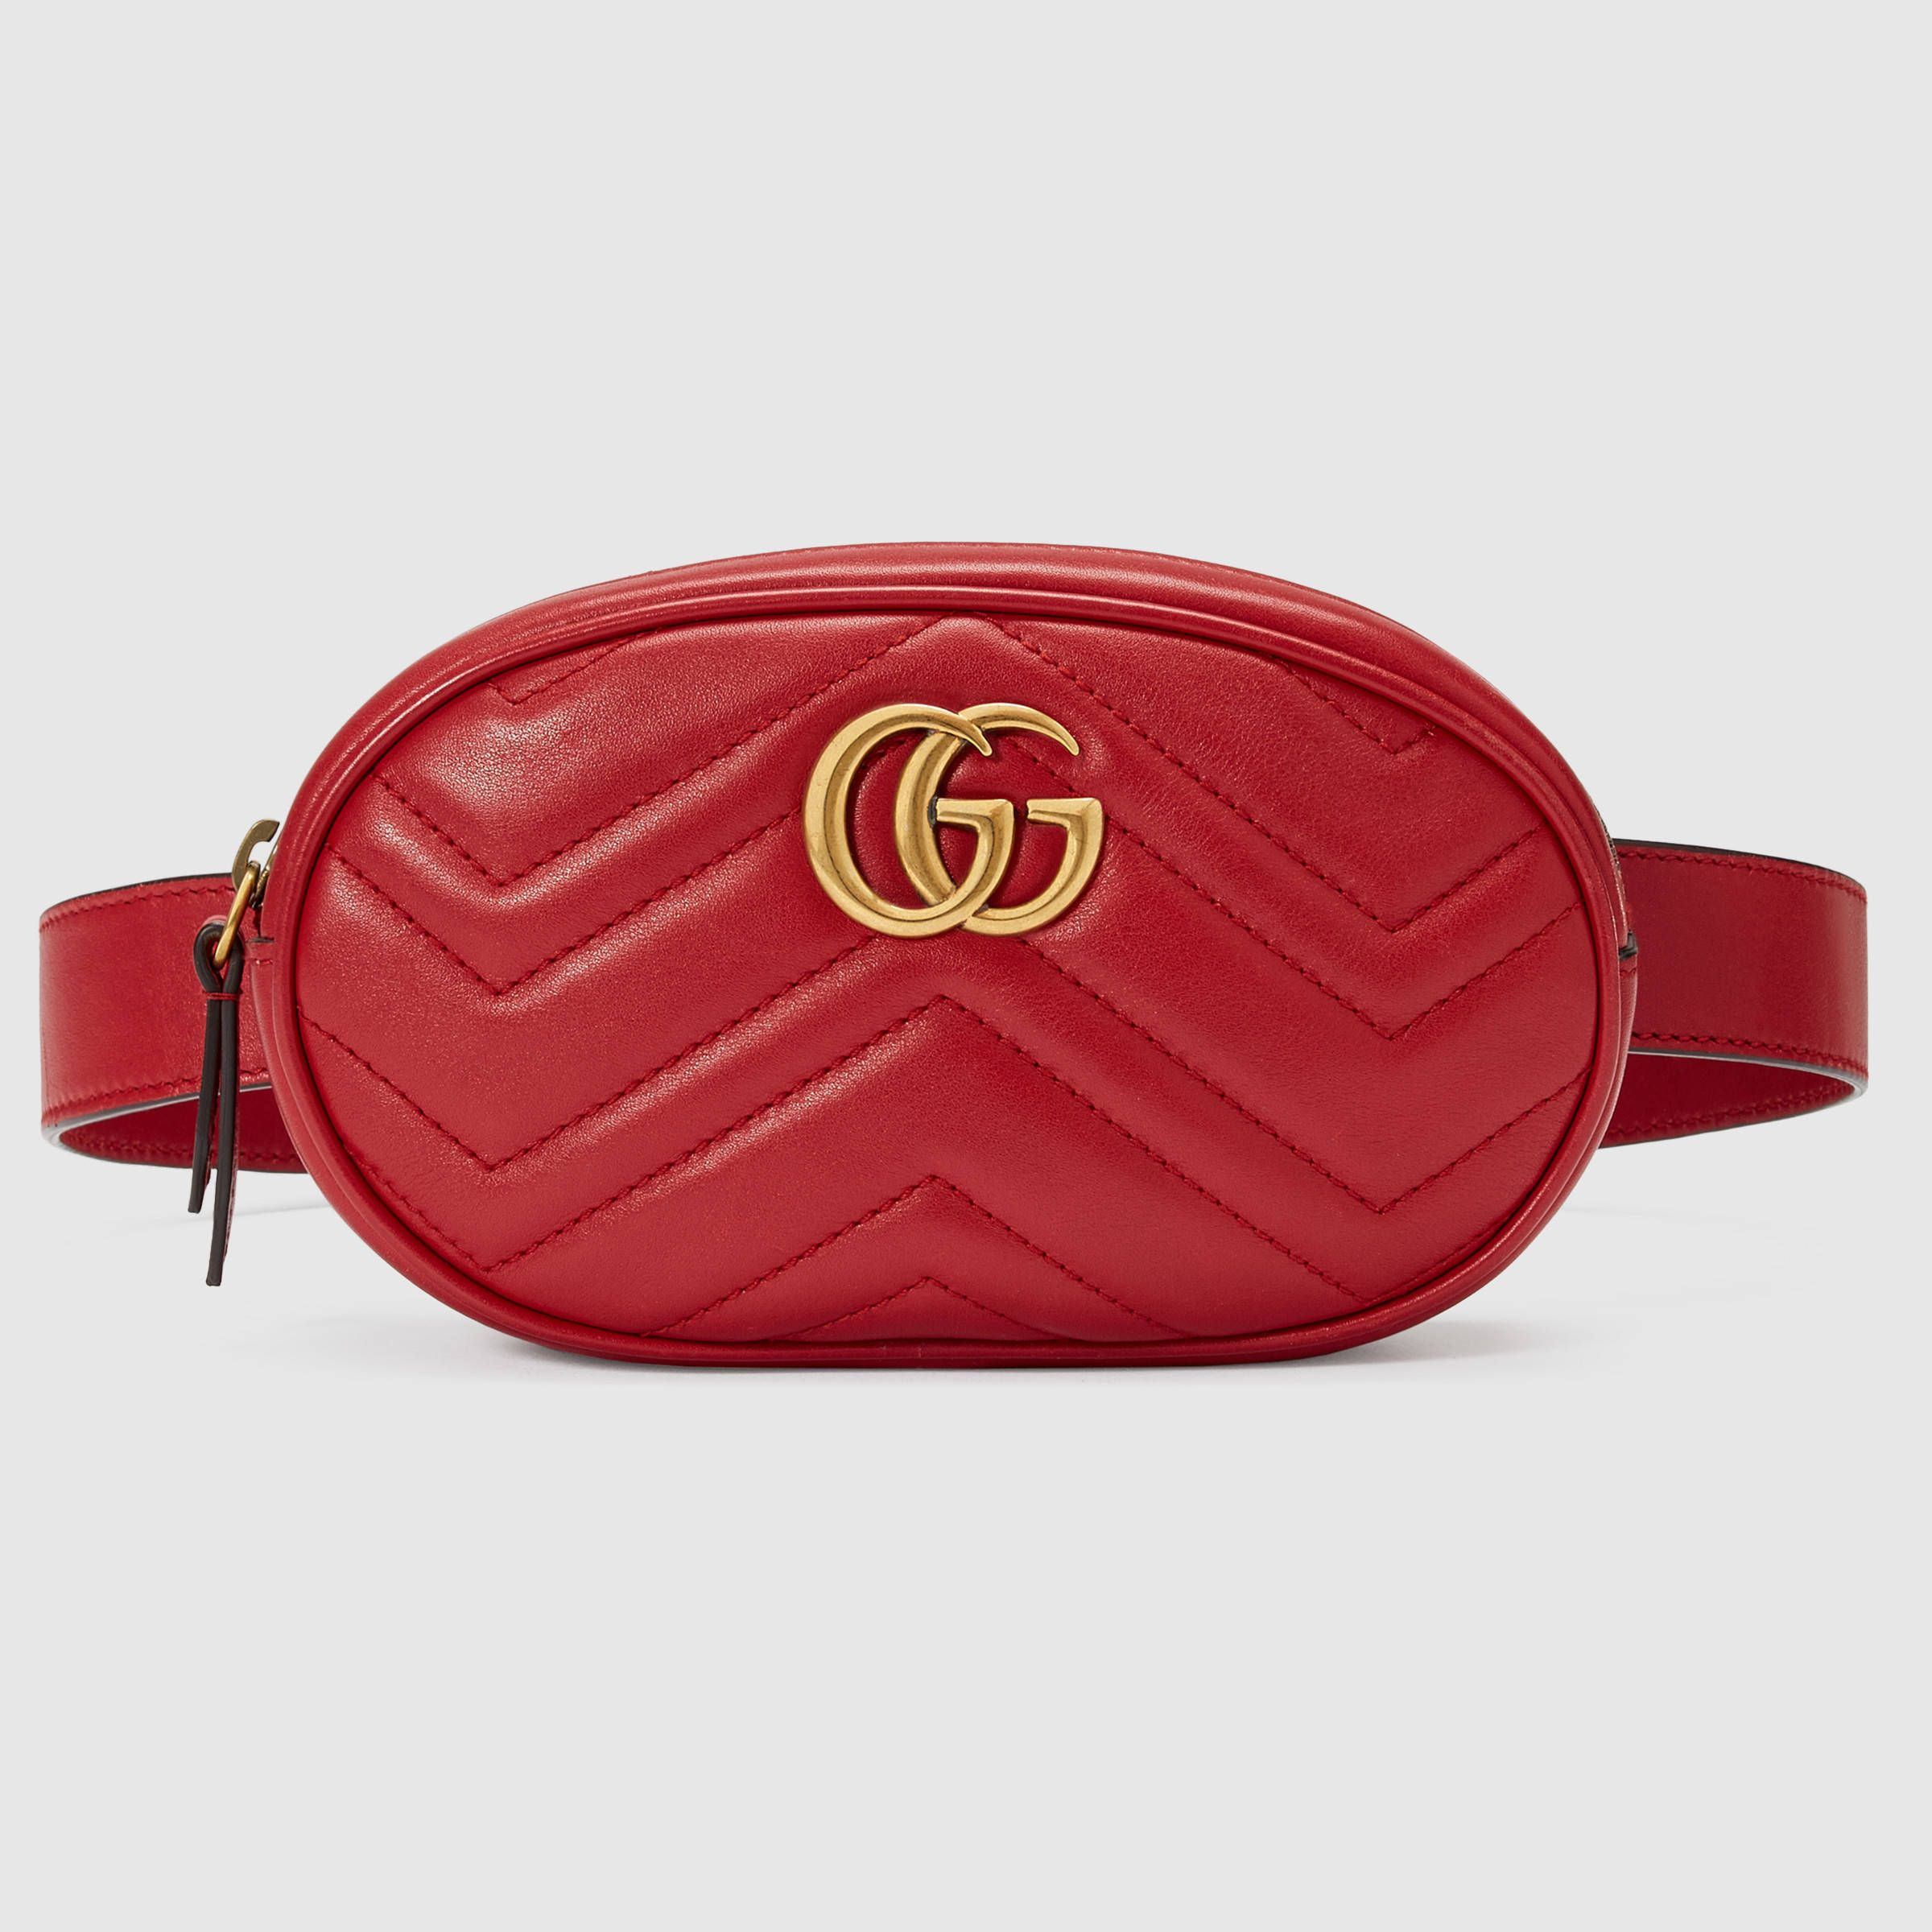 815a2cab3e7 GG Marmont matelassé leather belt bag in 2019